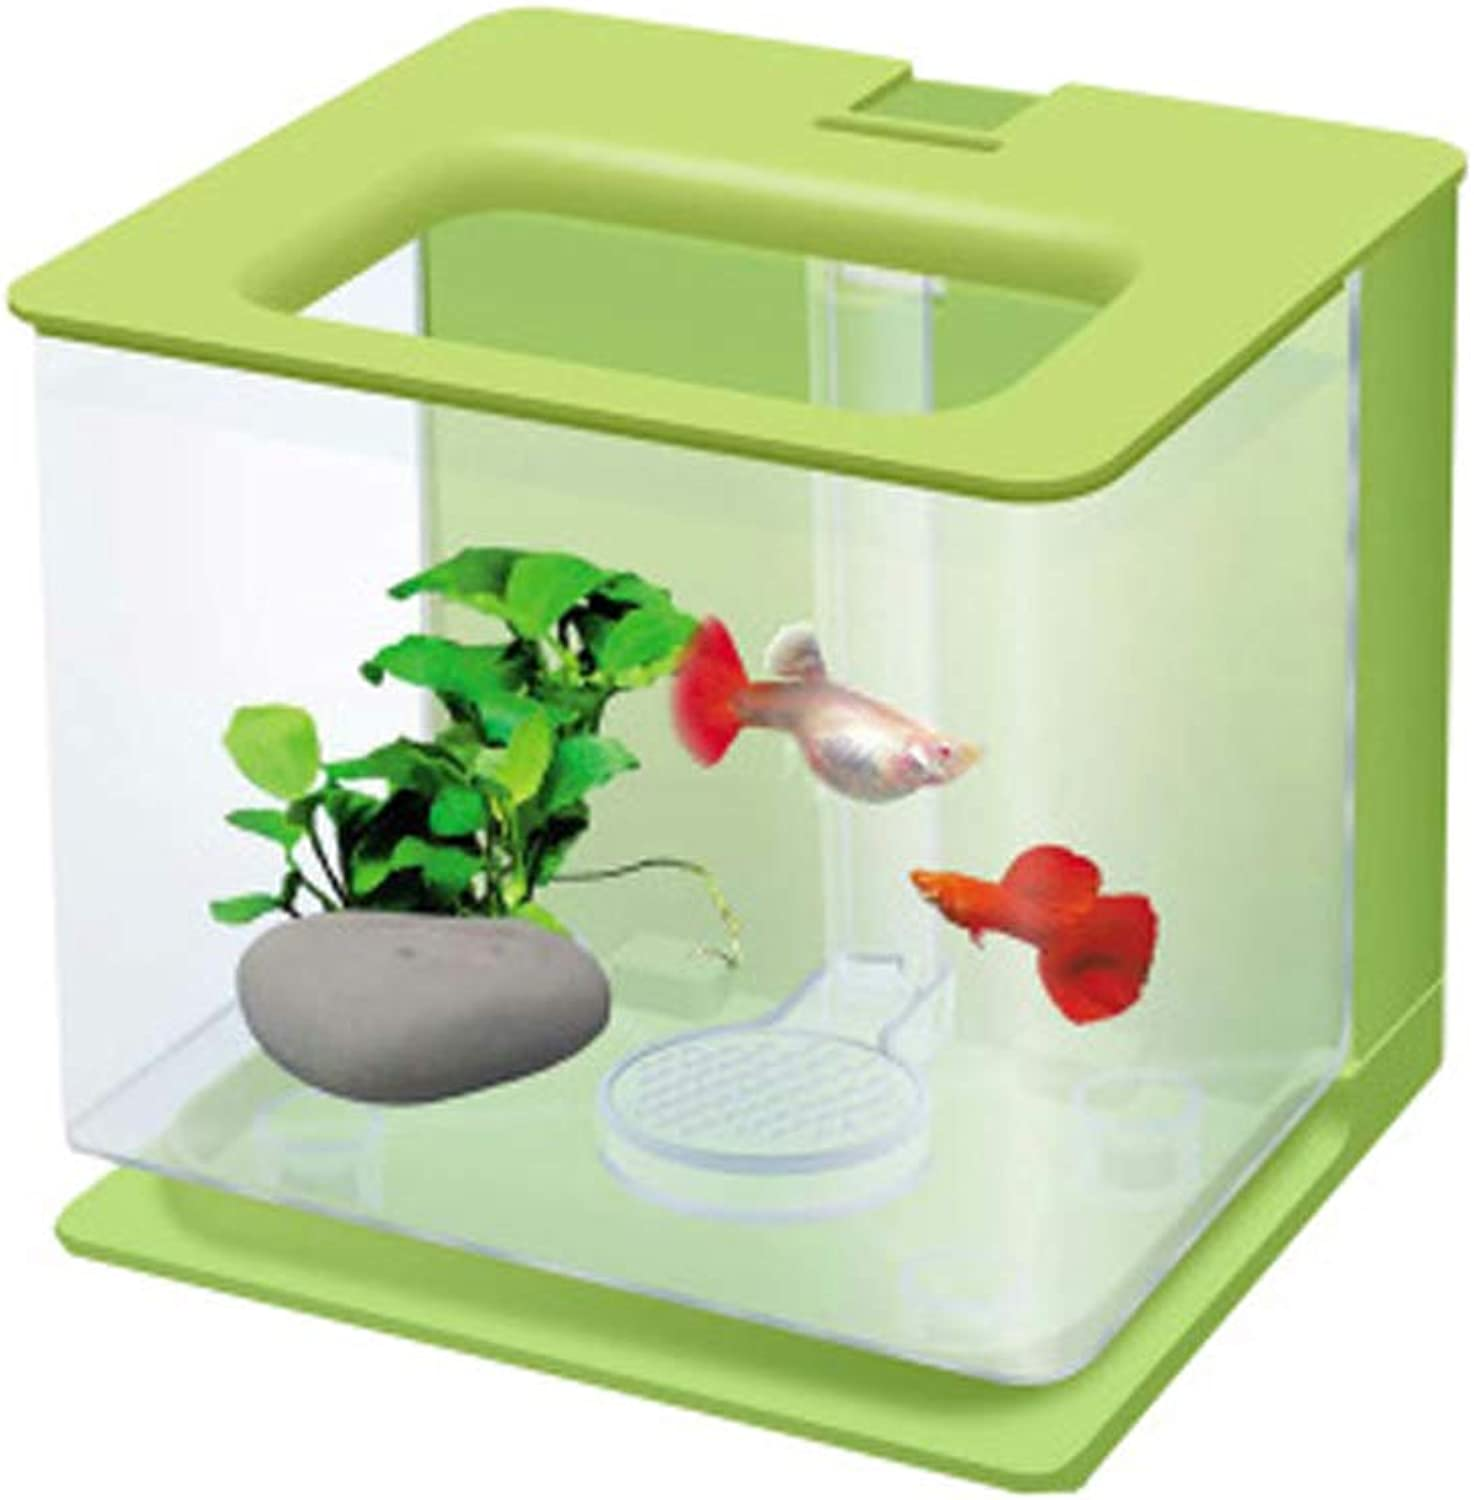 Beast Fish Tank Aquarium Fish Lazy selfCleaning Desktop Mini Plastic Creative Ecological Free Water goldfish SmallLightGreen